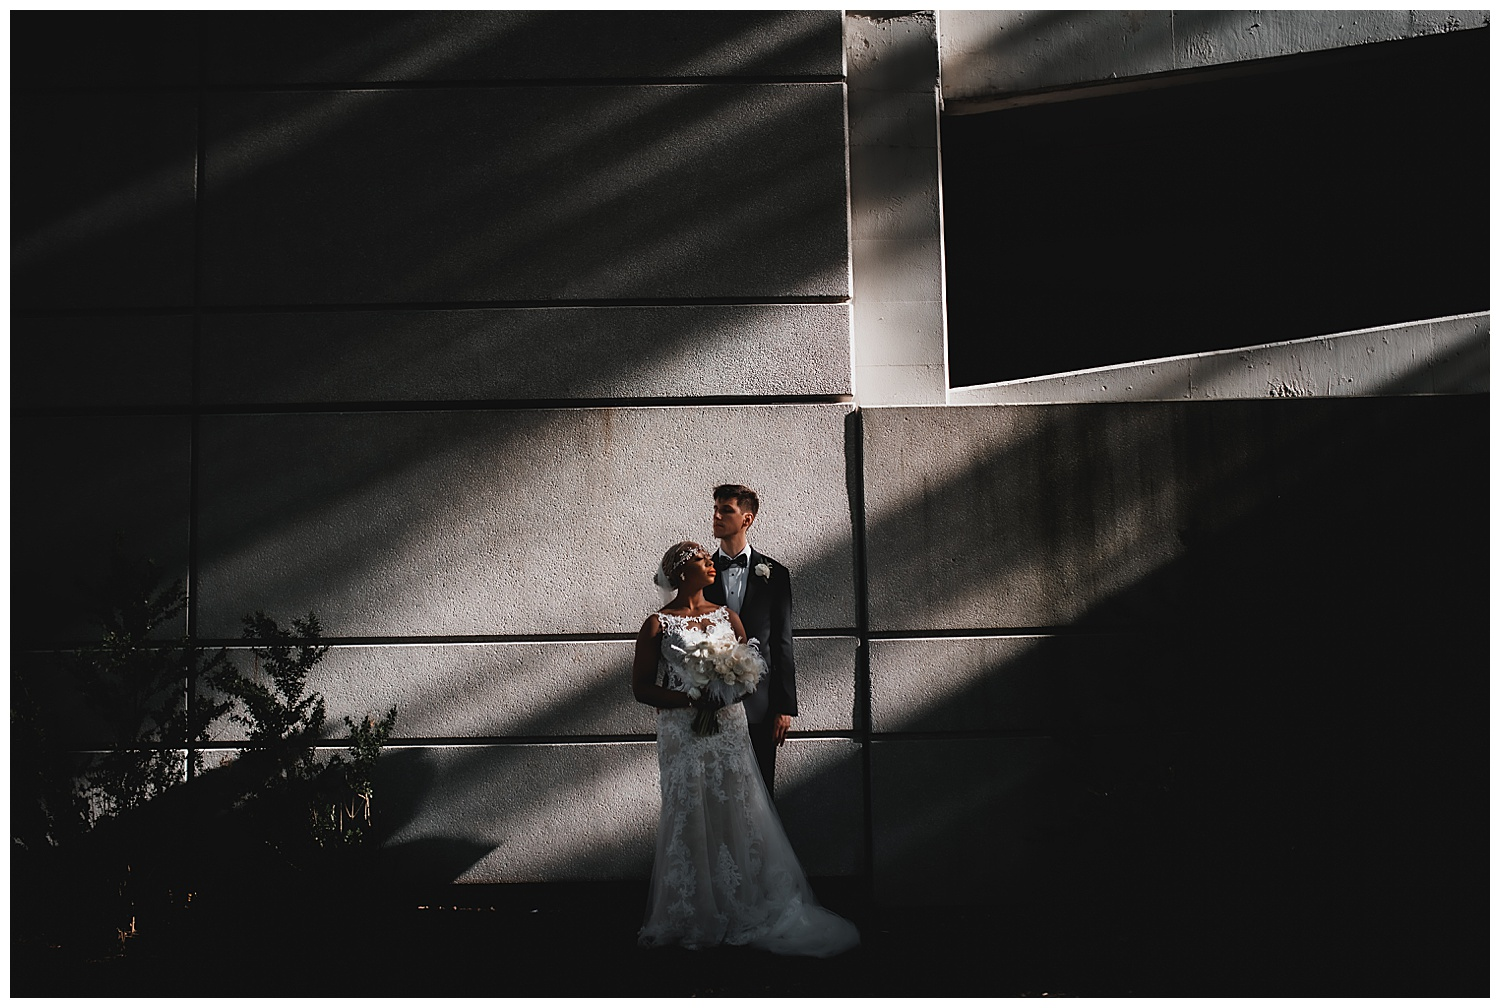 Keith House Chicago Wedding, The Adamkovi, epic bride and groom portrait in harsh light, interracial couple